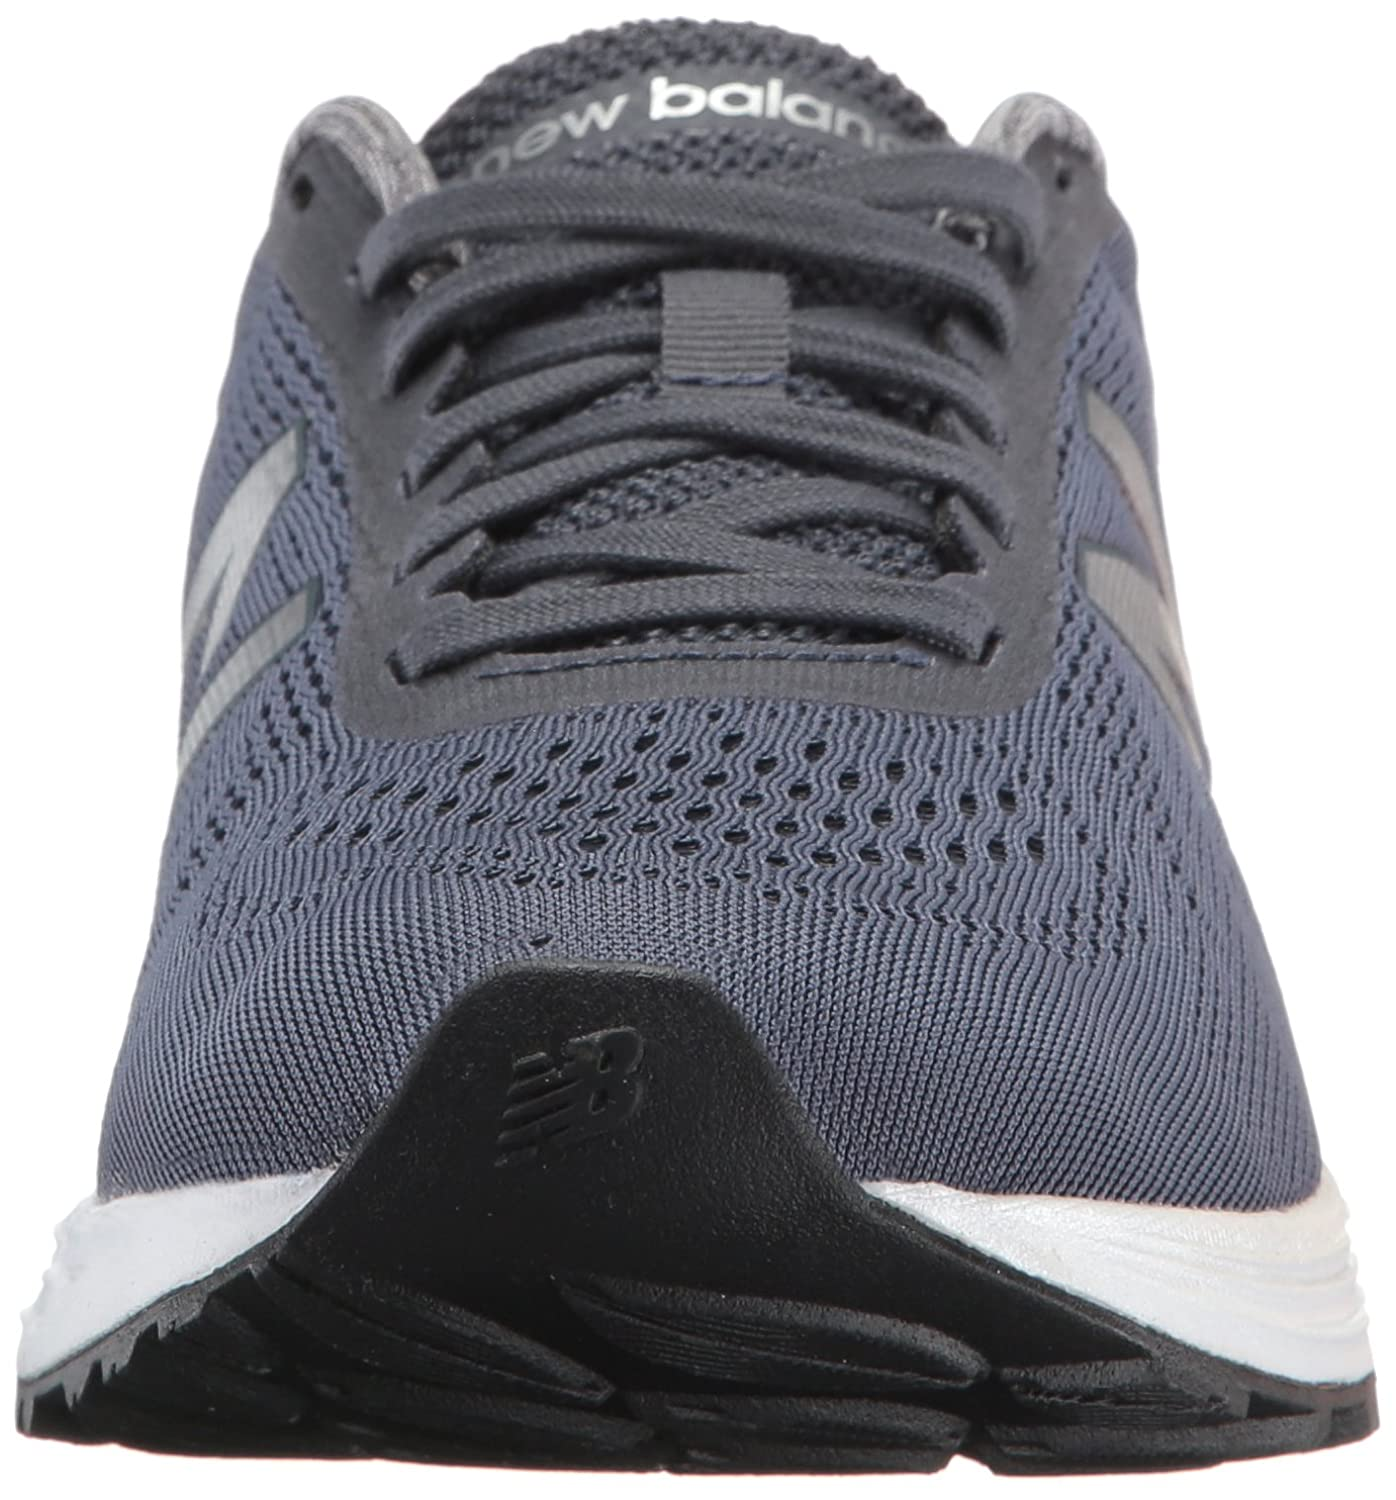 New Balance Women's Fresh Foam Arishi V1 Running Shoe B01MXNYK2N 12 B(M) US|Dark Grey